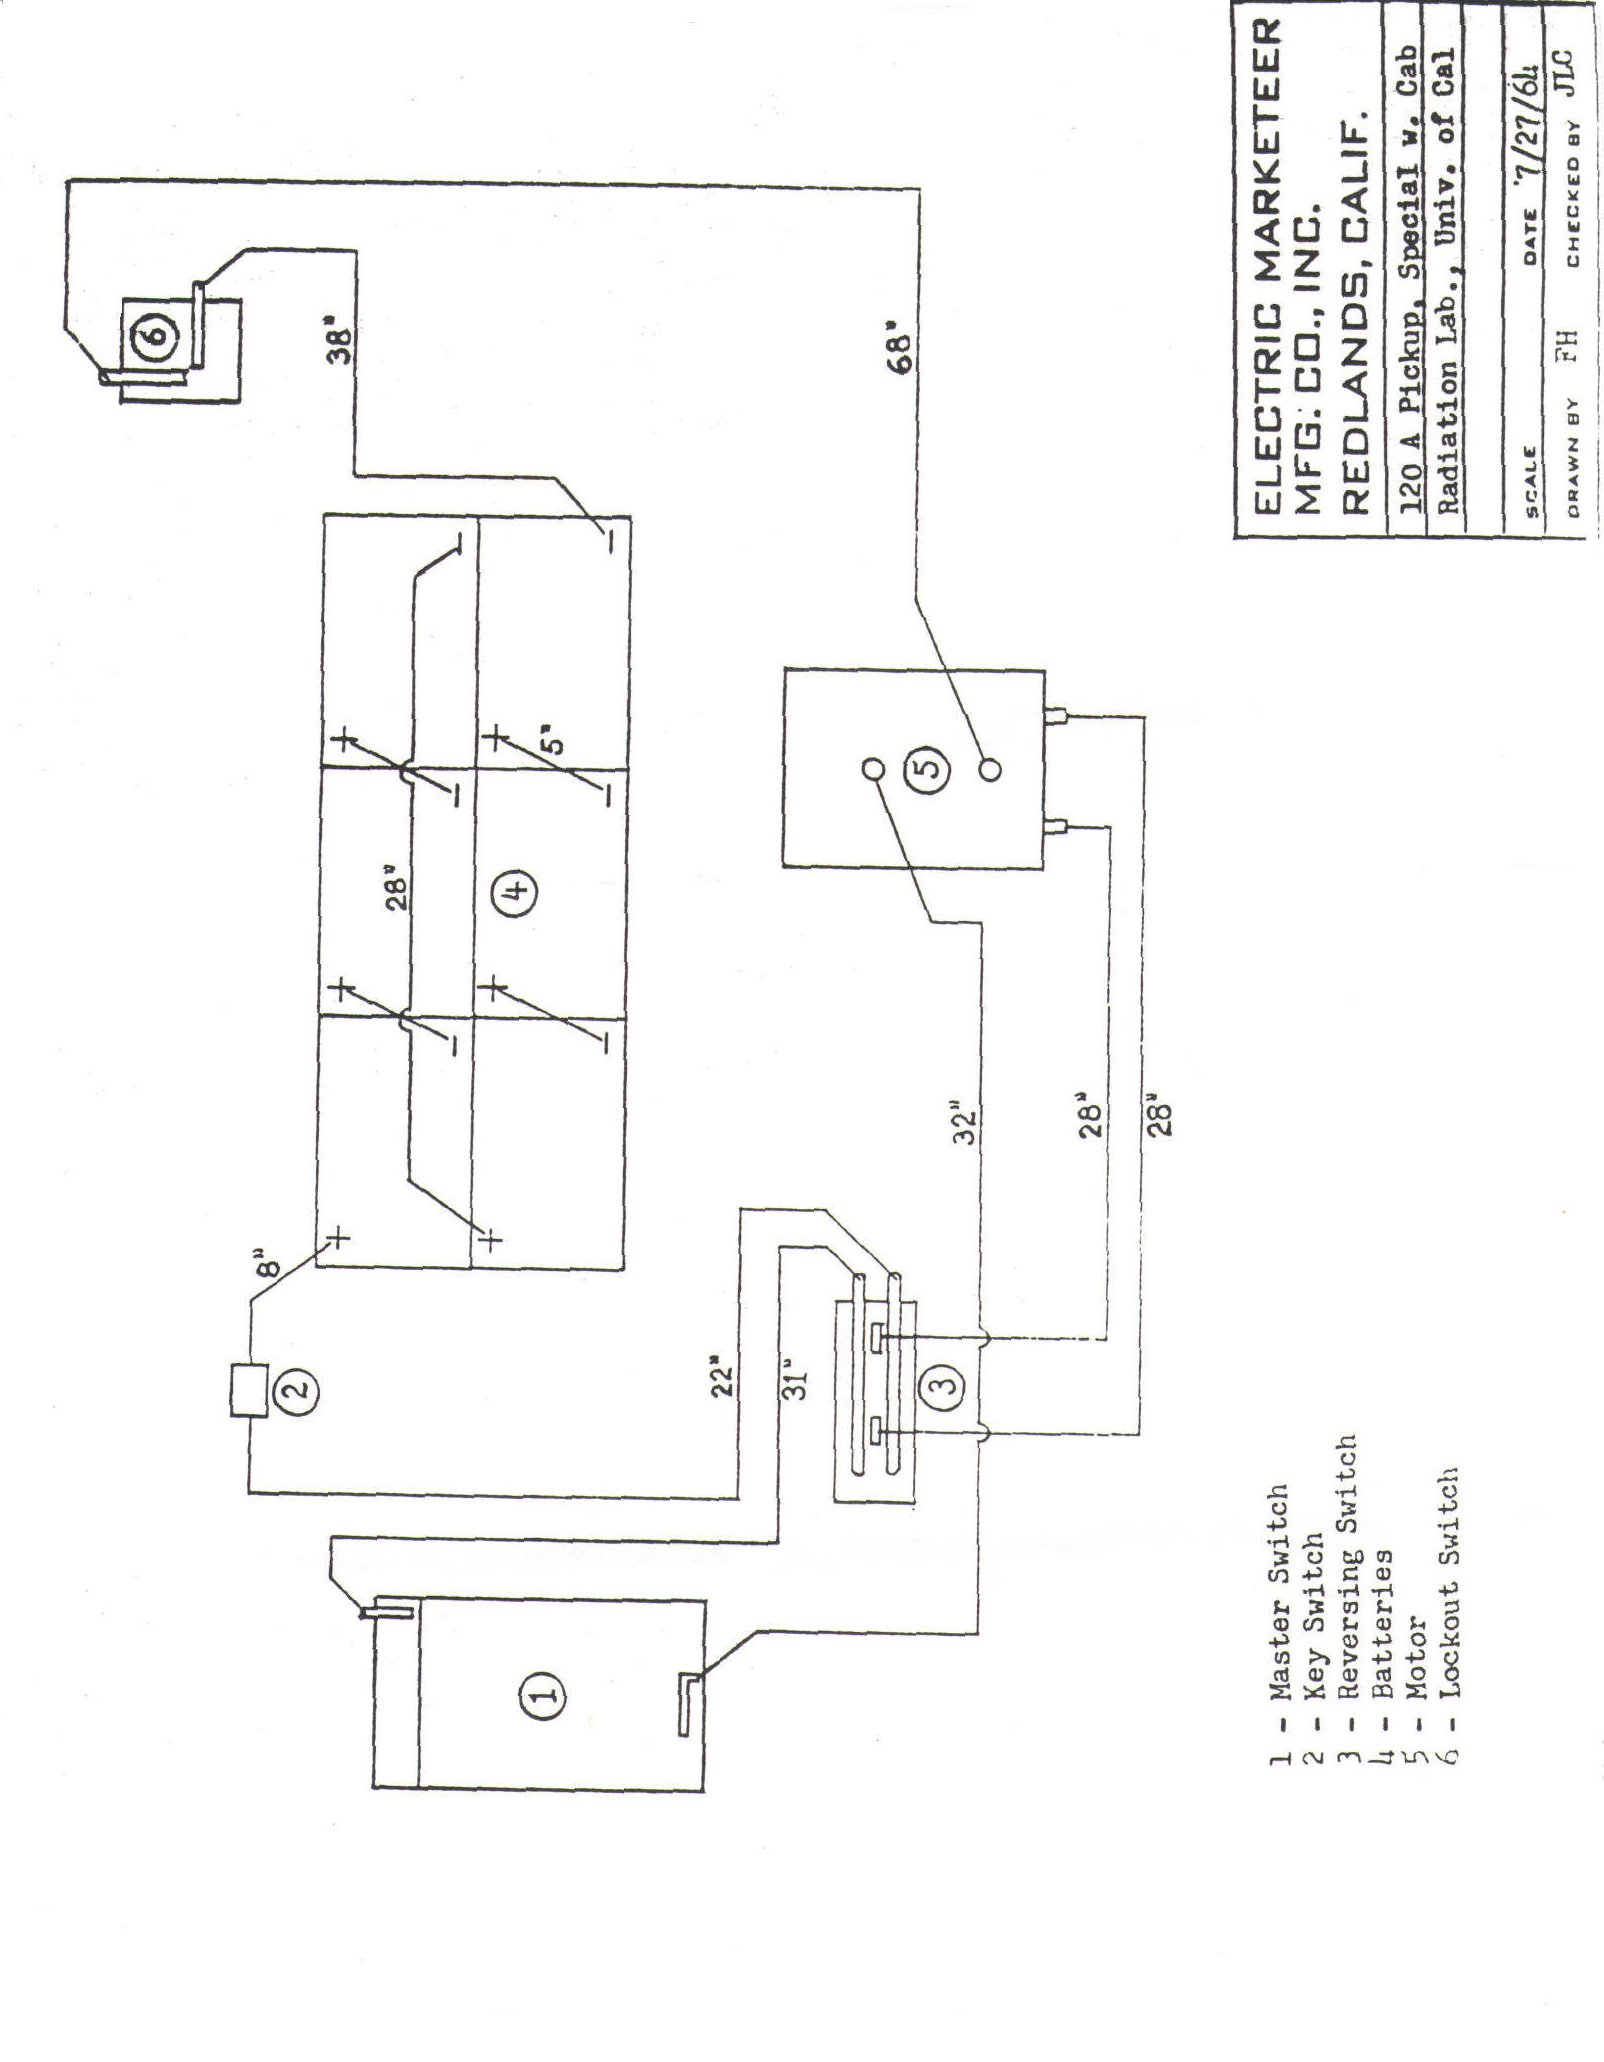 hight resolution of melex electric golf cart 6 volt wiring diagram